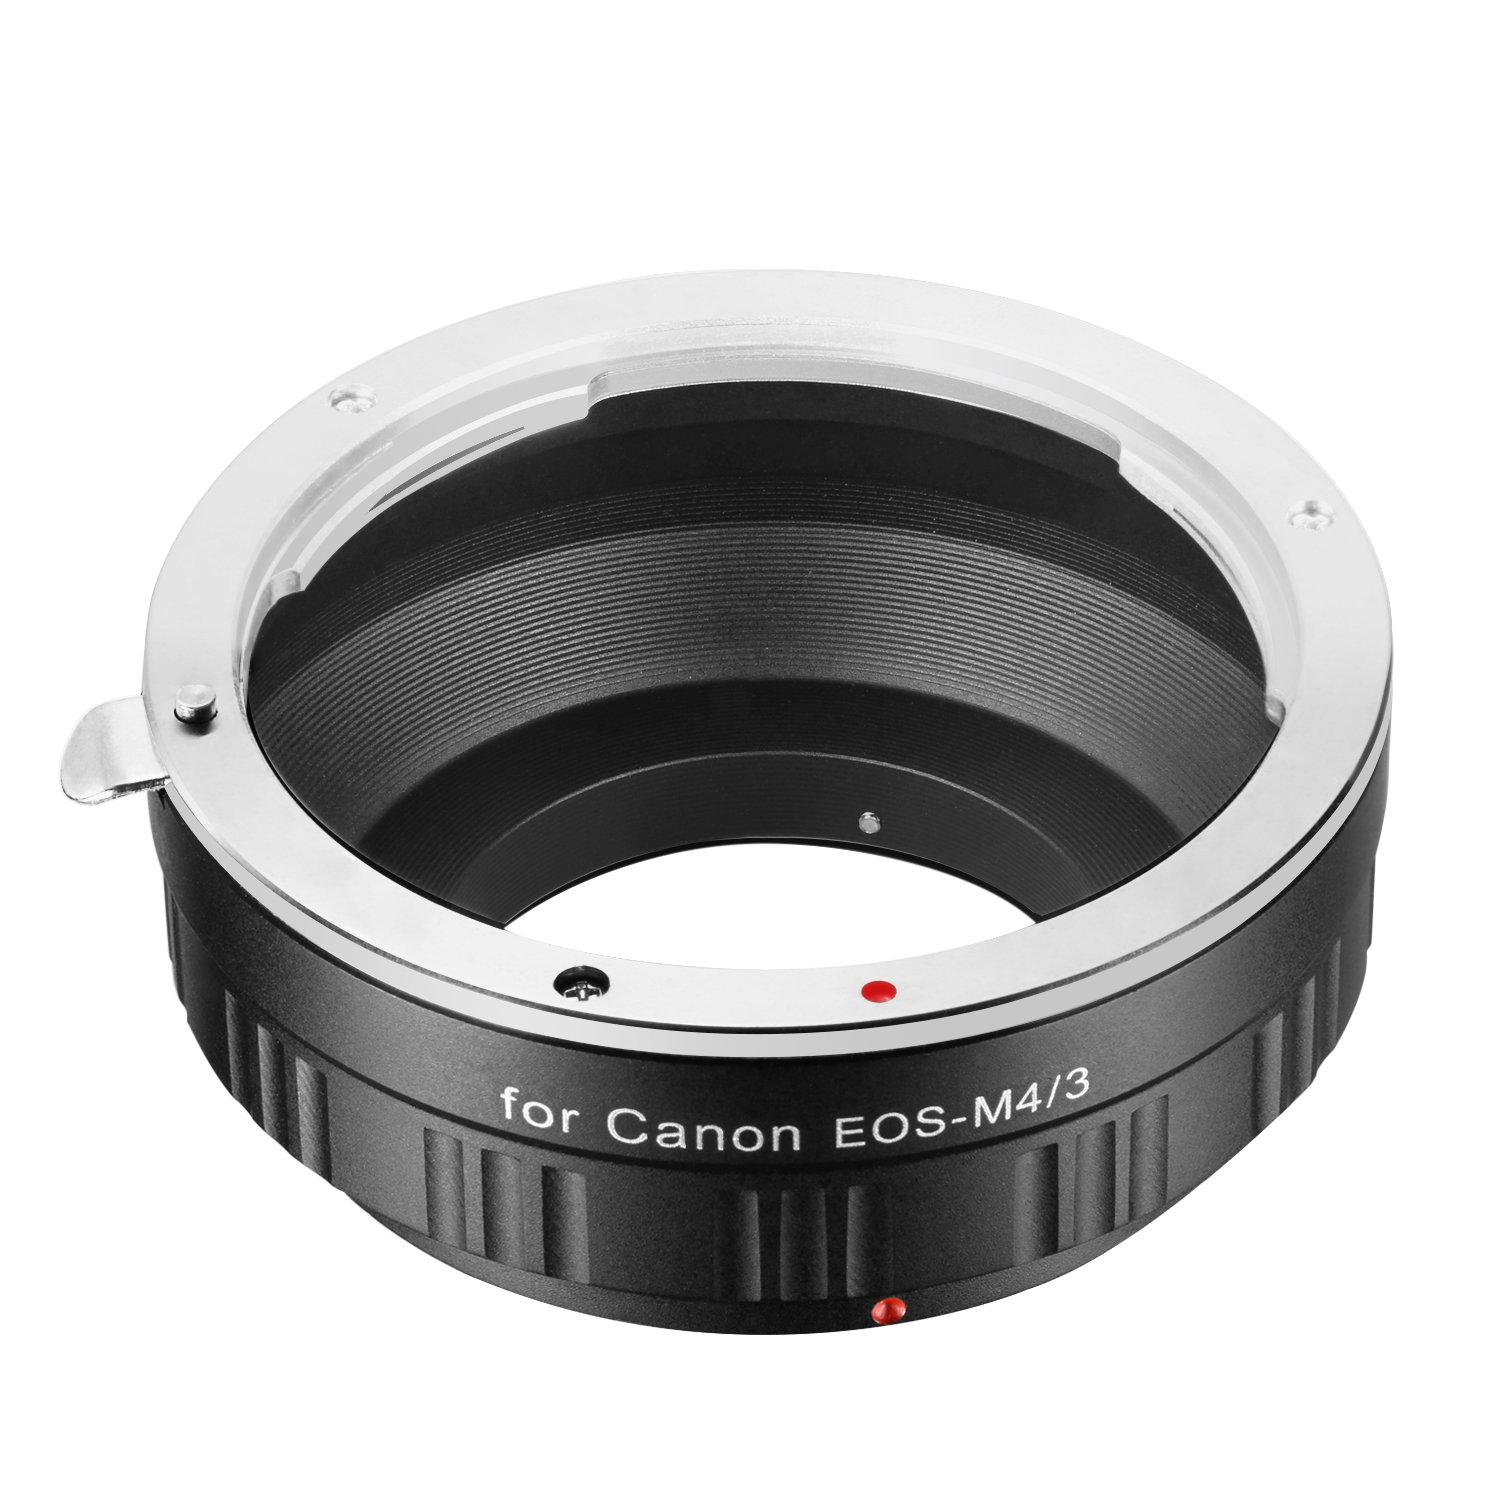 [해외]NEEWER 렌즈 어댑터 Canon EOS EF 렌즈 변환 M43 マイクロフォ?サ?ズカメラ에 대응 【 병행 수입품 】 / NEEWER Lens Adapter Canon EOS EF lens conversion m43 Micro Four Thirds camera compatible [parallel import products]